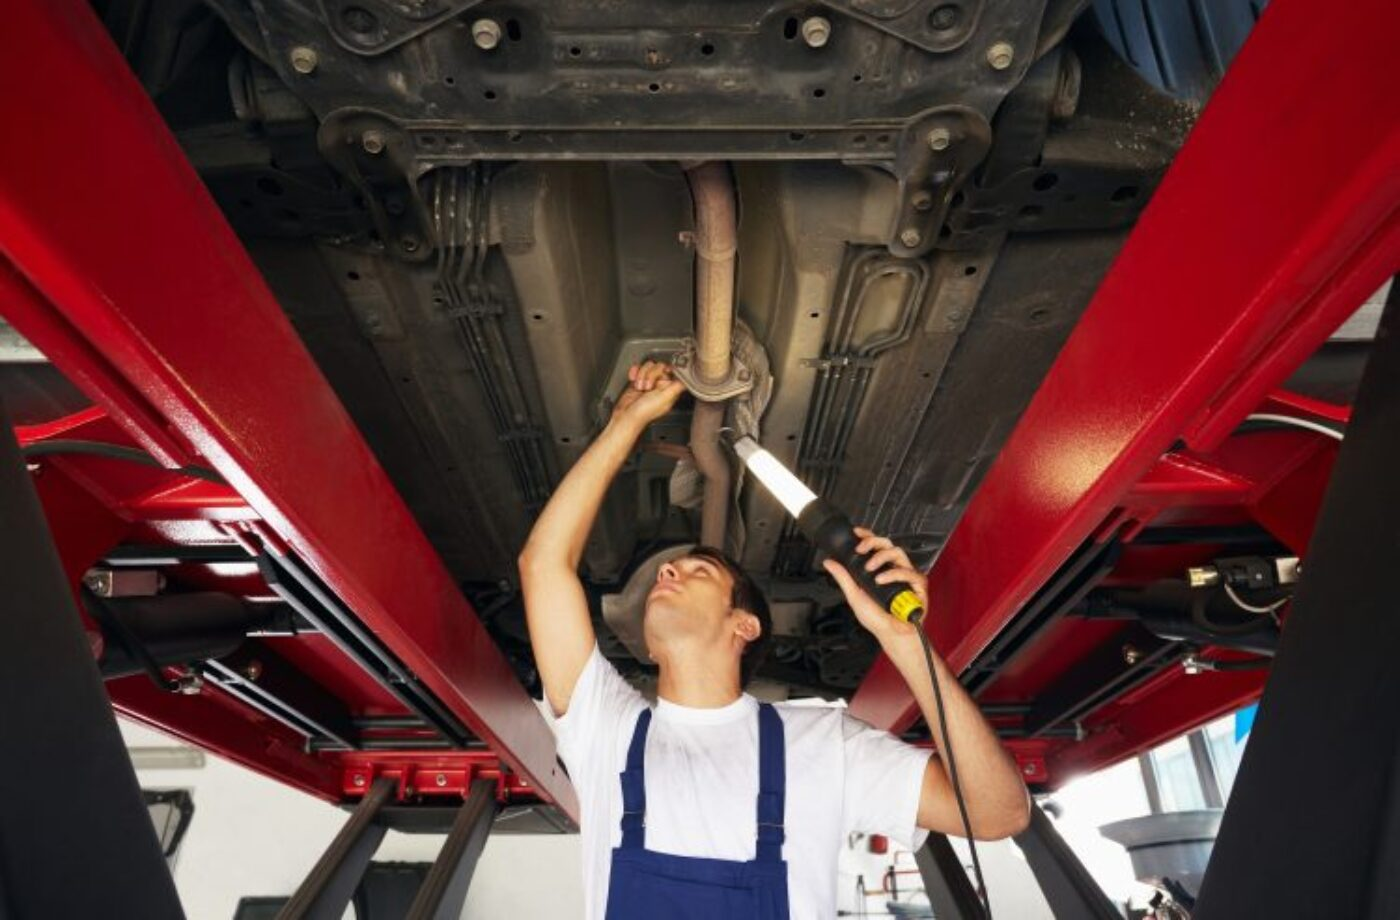 MOT RAG scores explained and how to improve yours